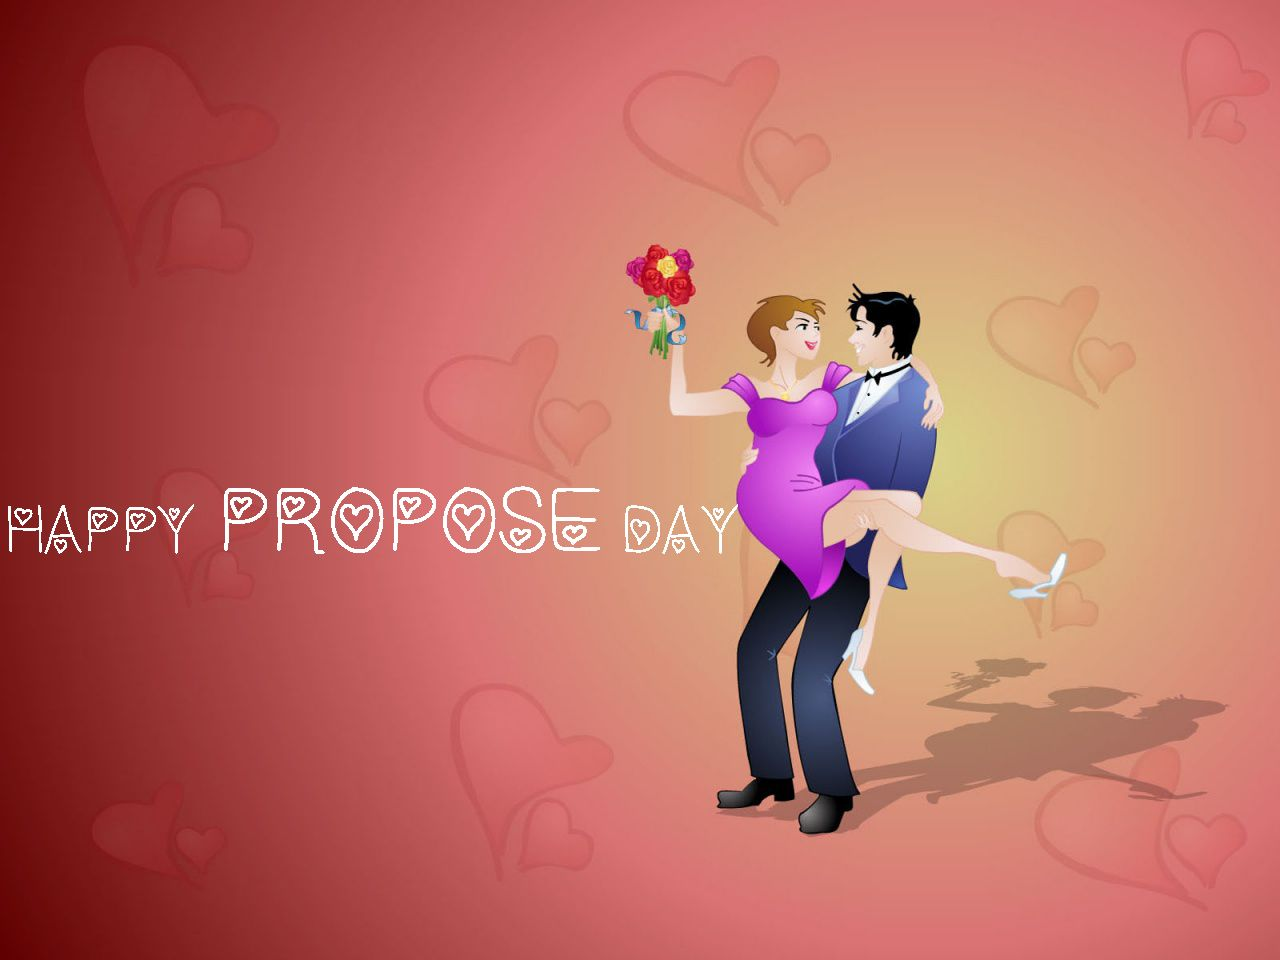 Top 23 Best Happy Propose Day Wallpapers, Image and Pics